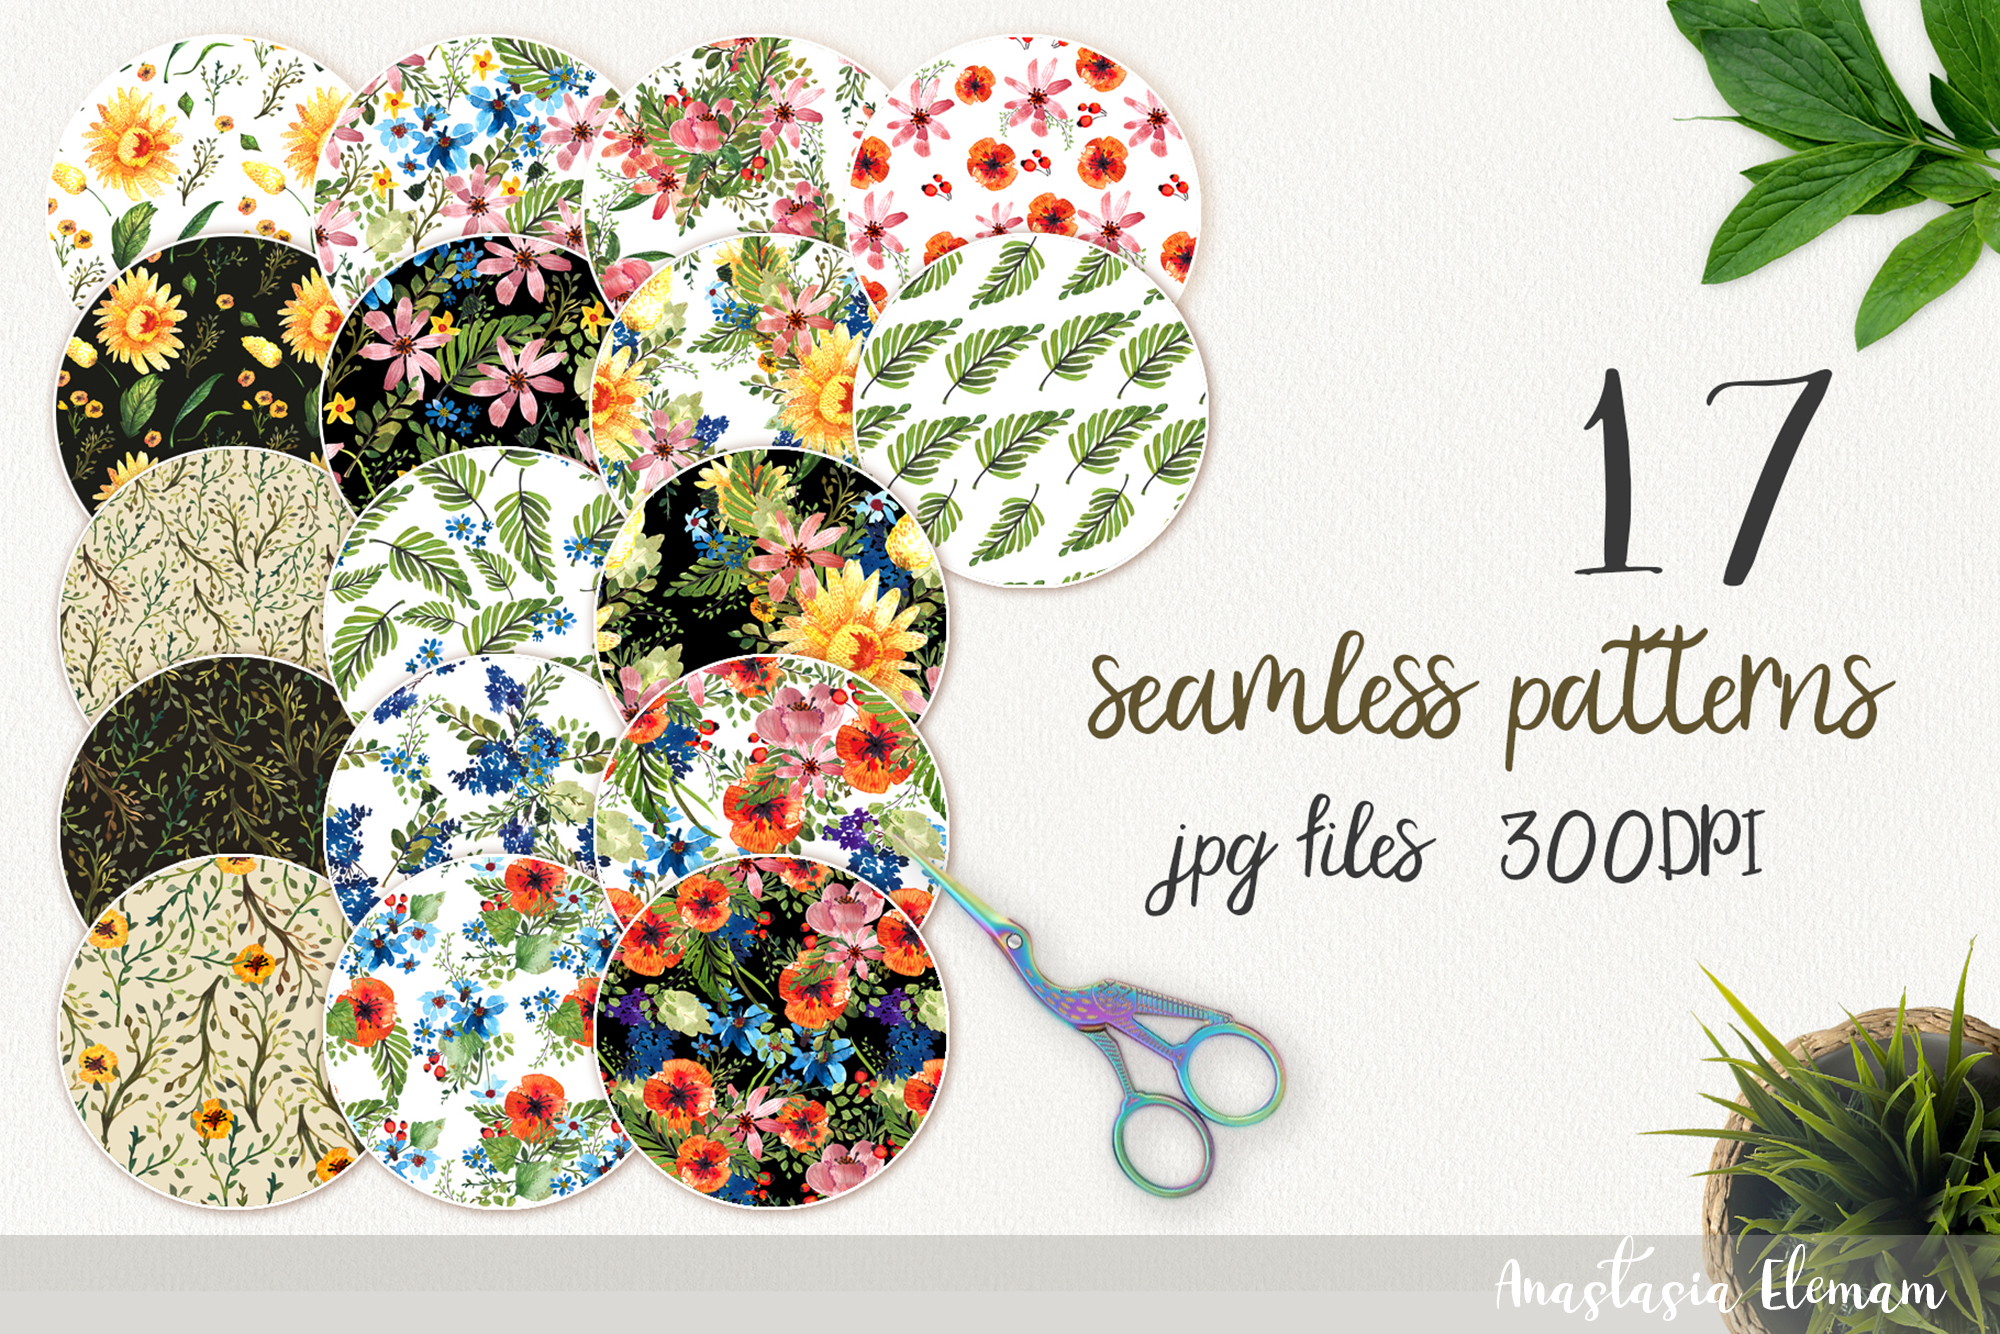 Patterns flower power 17 seamless jpeg seamless watercolor example image 1